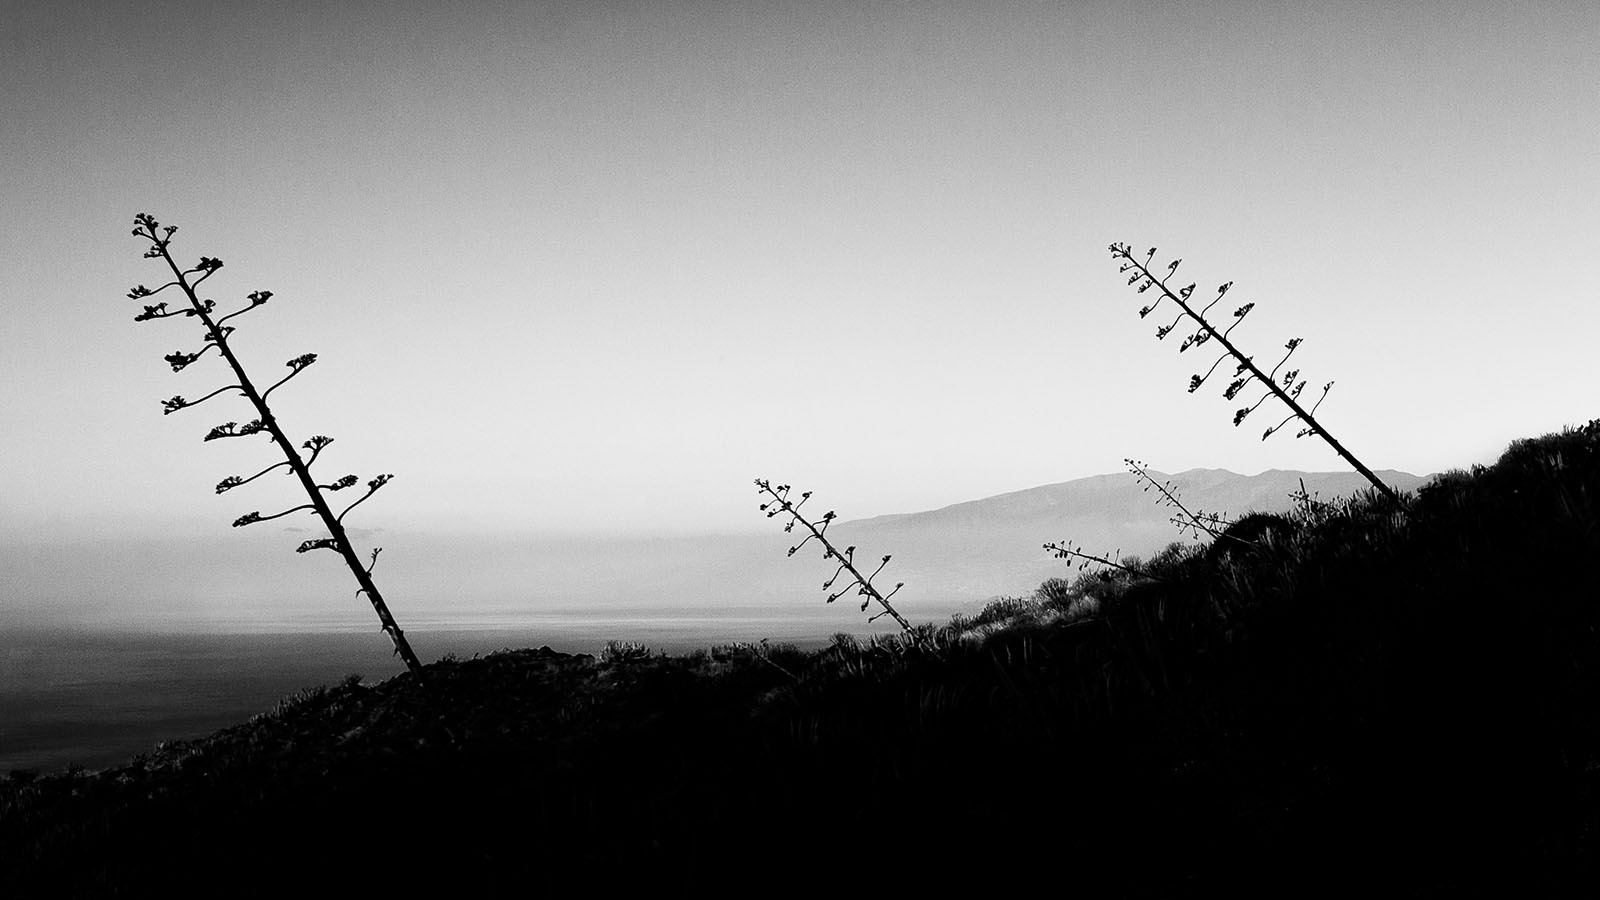 Tenerife I - Anaga Mountains - Fine Art Black & White Photography